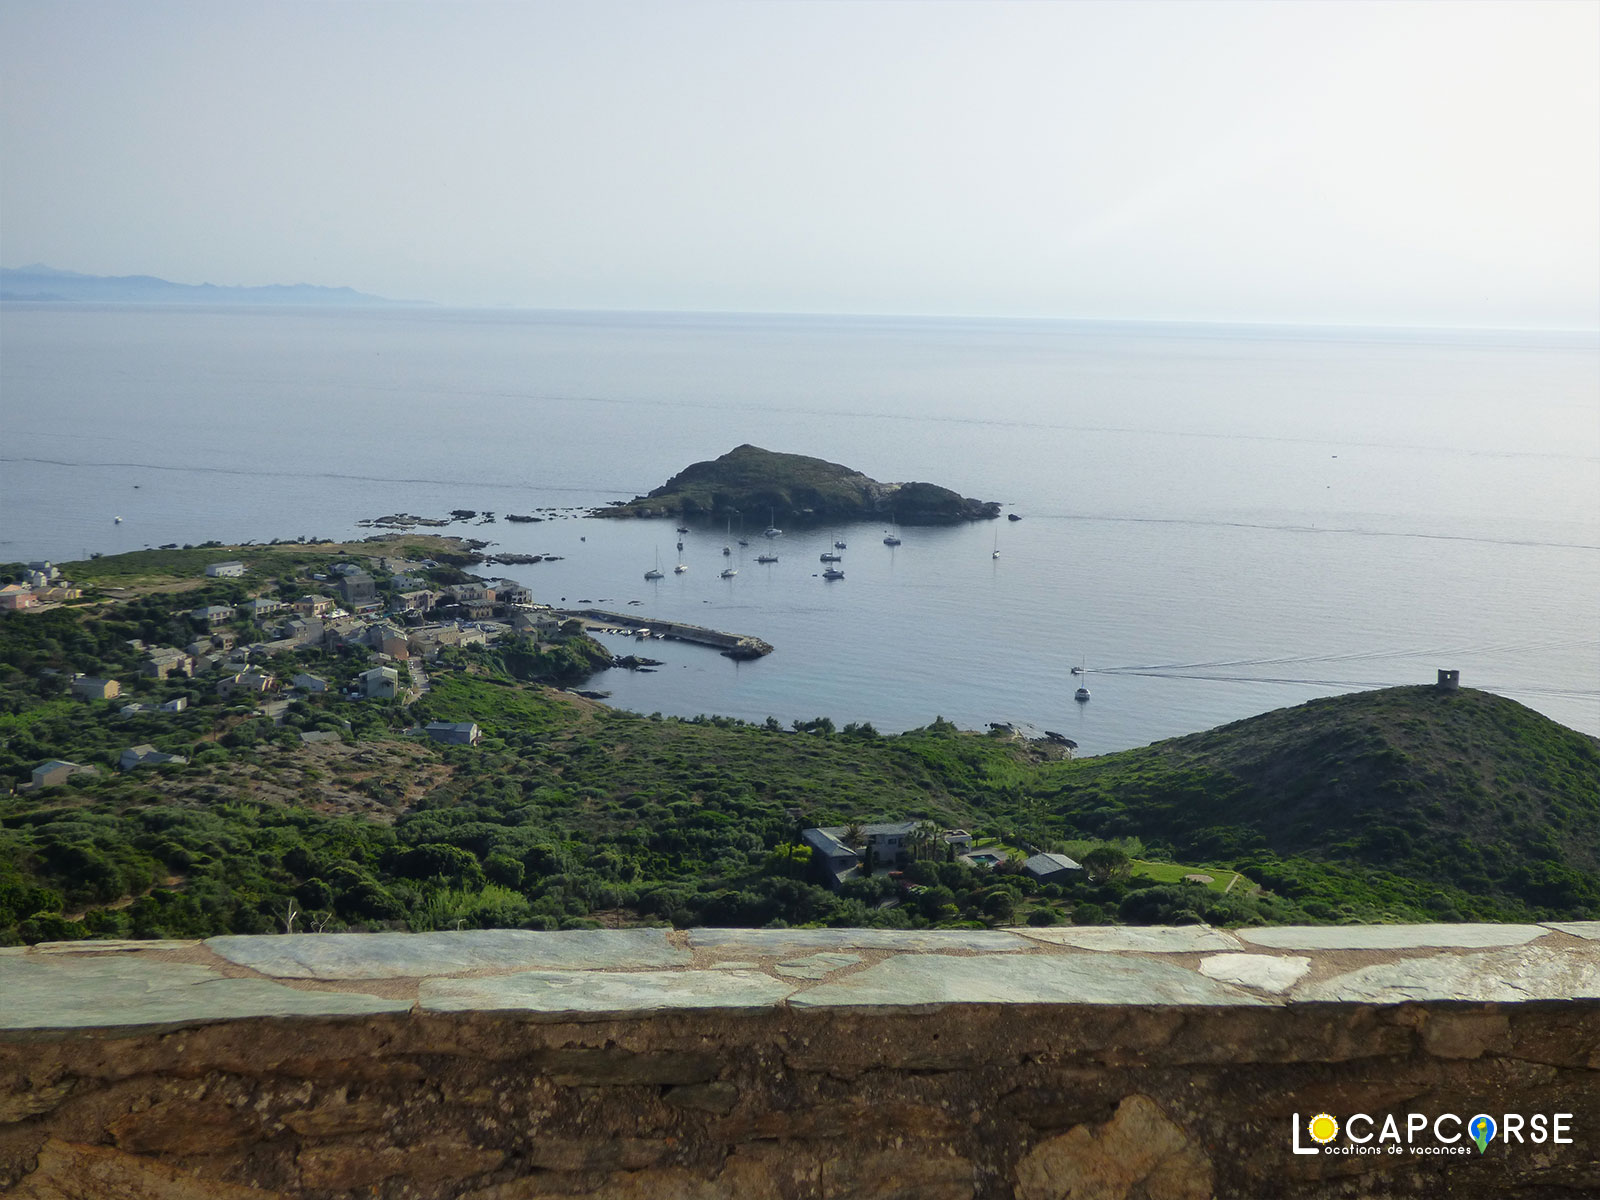 Locations Cap Corse - The view of the port of Centuri and its beautiful bay